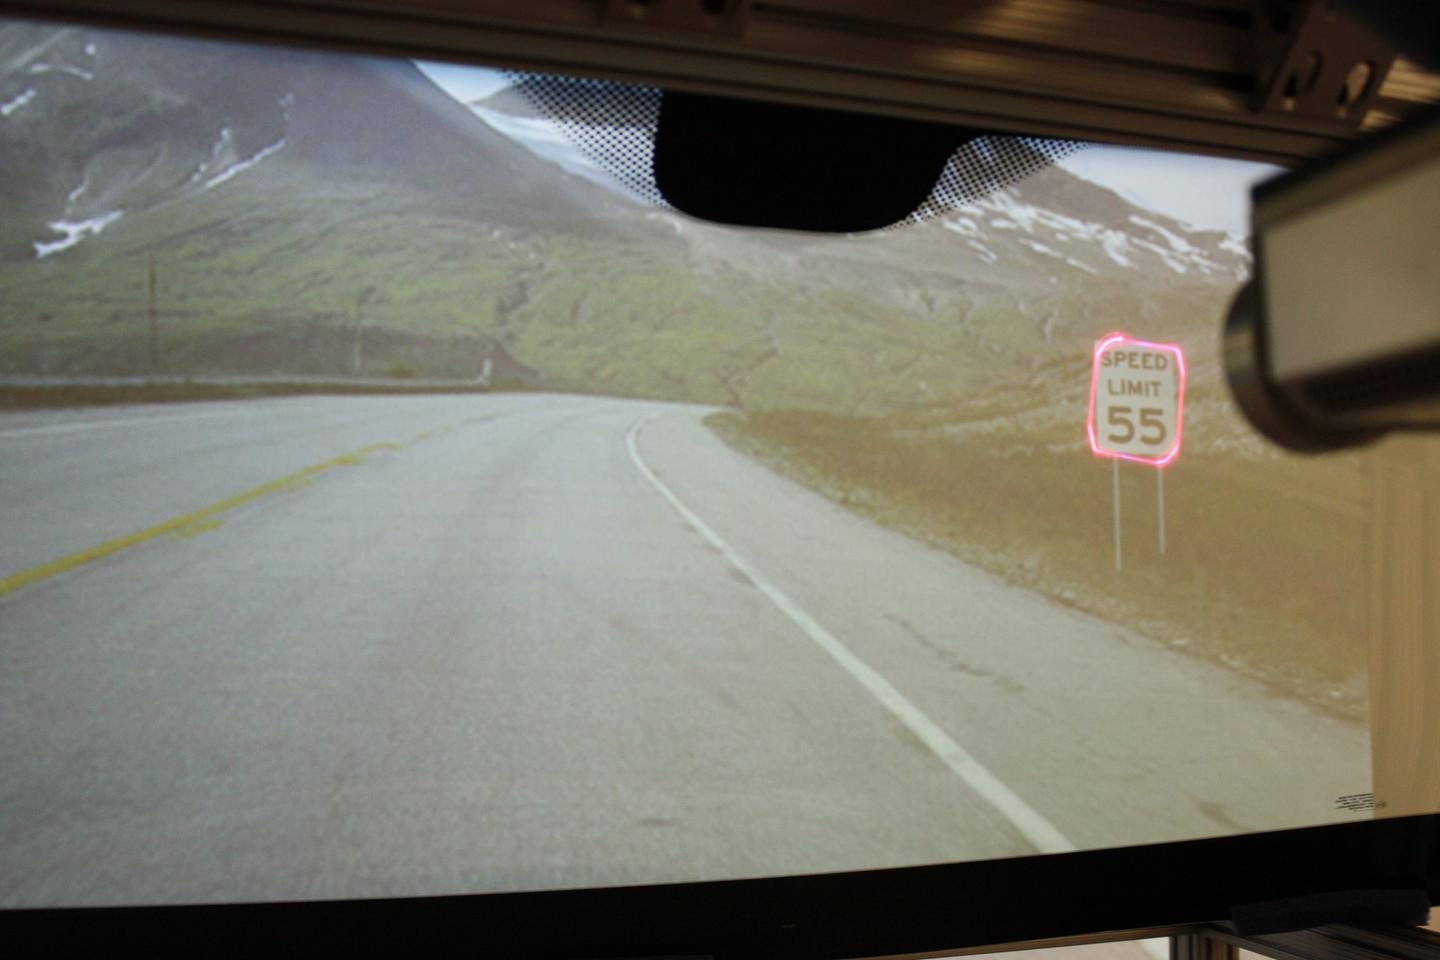 The system could be used to bring speed restrictions to the attention of the driver